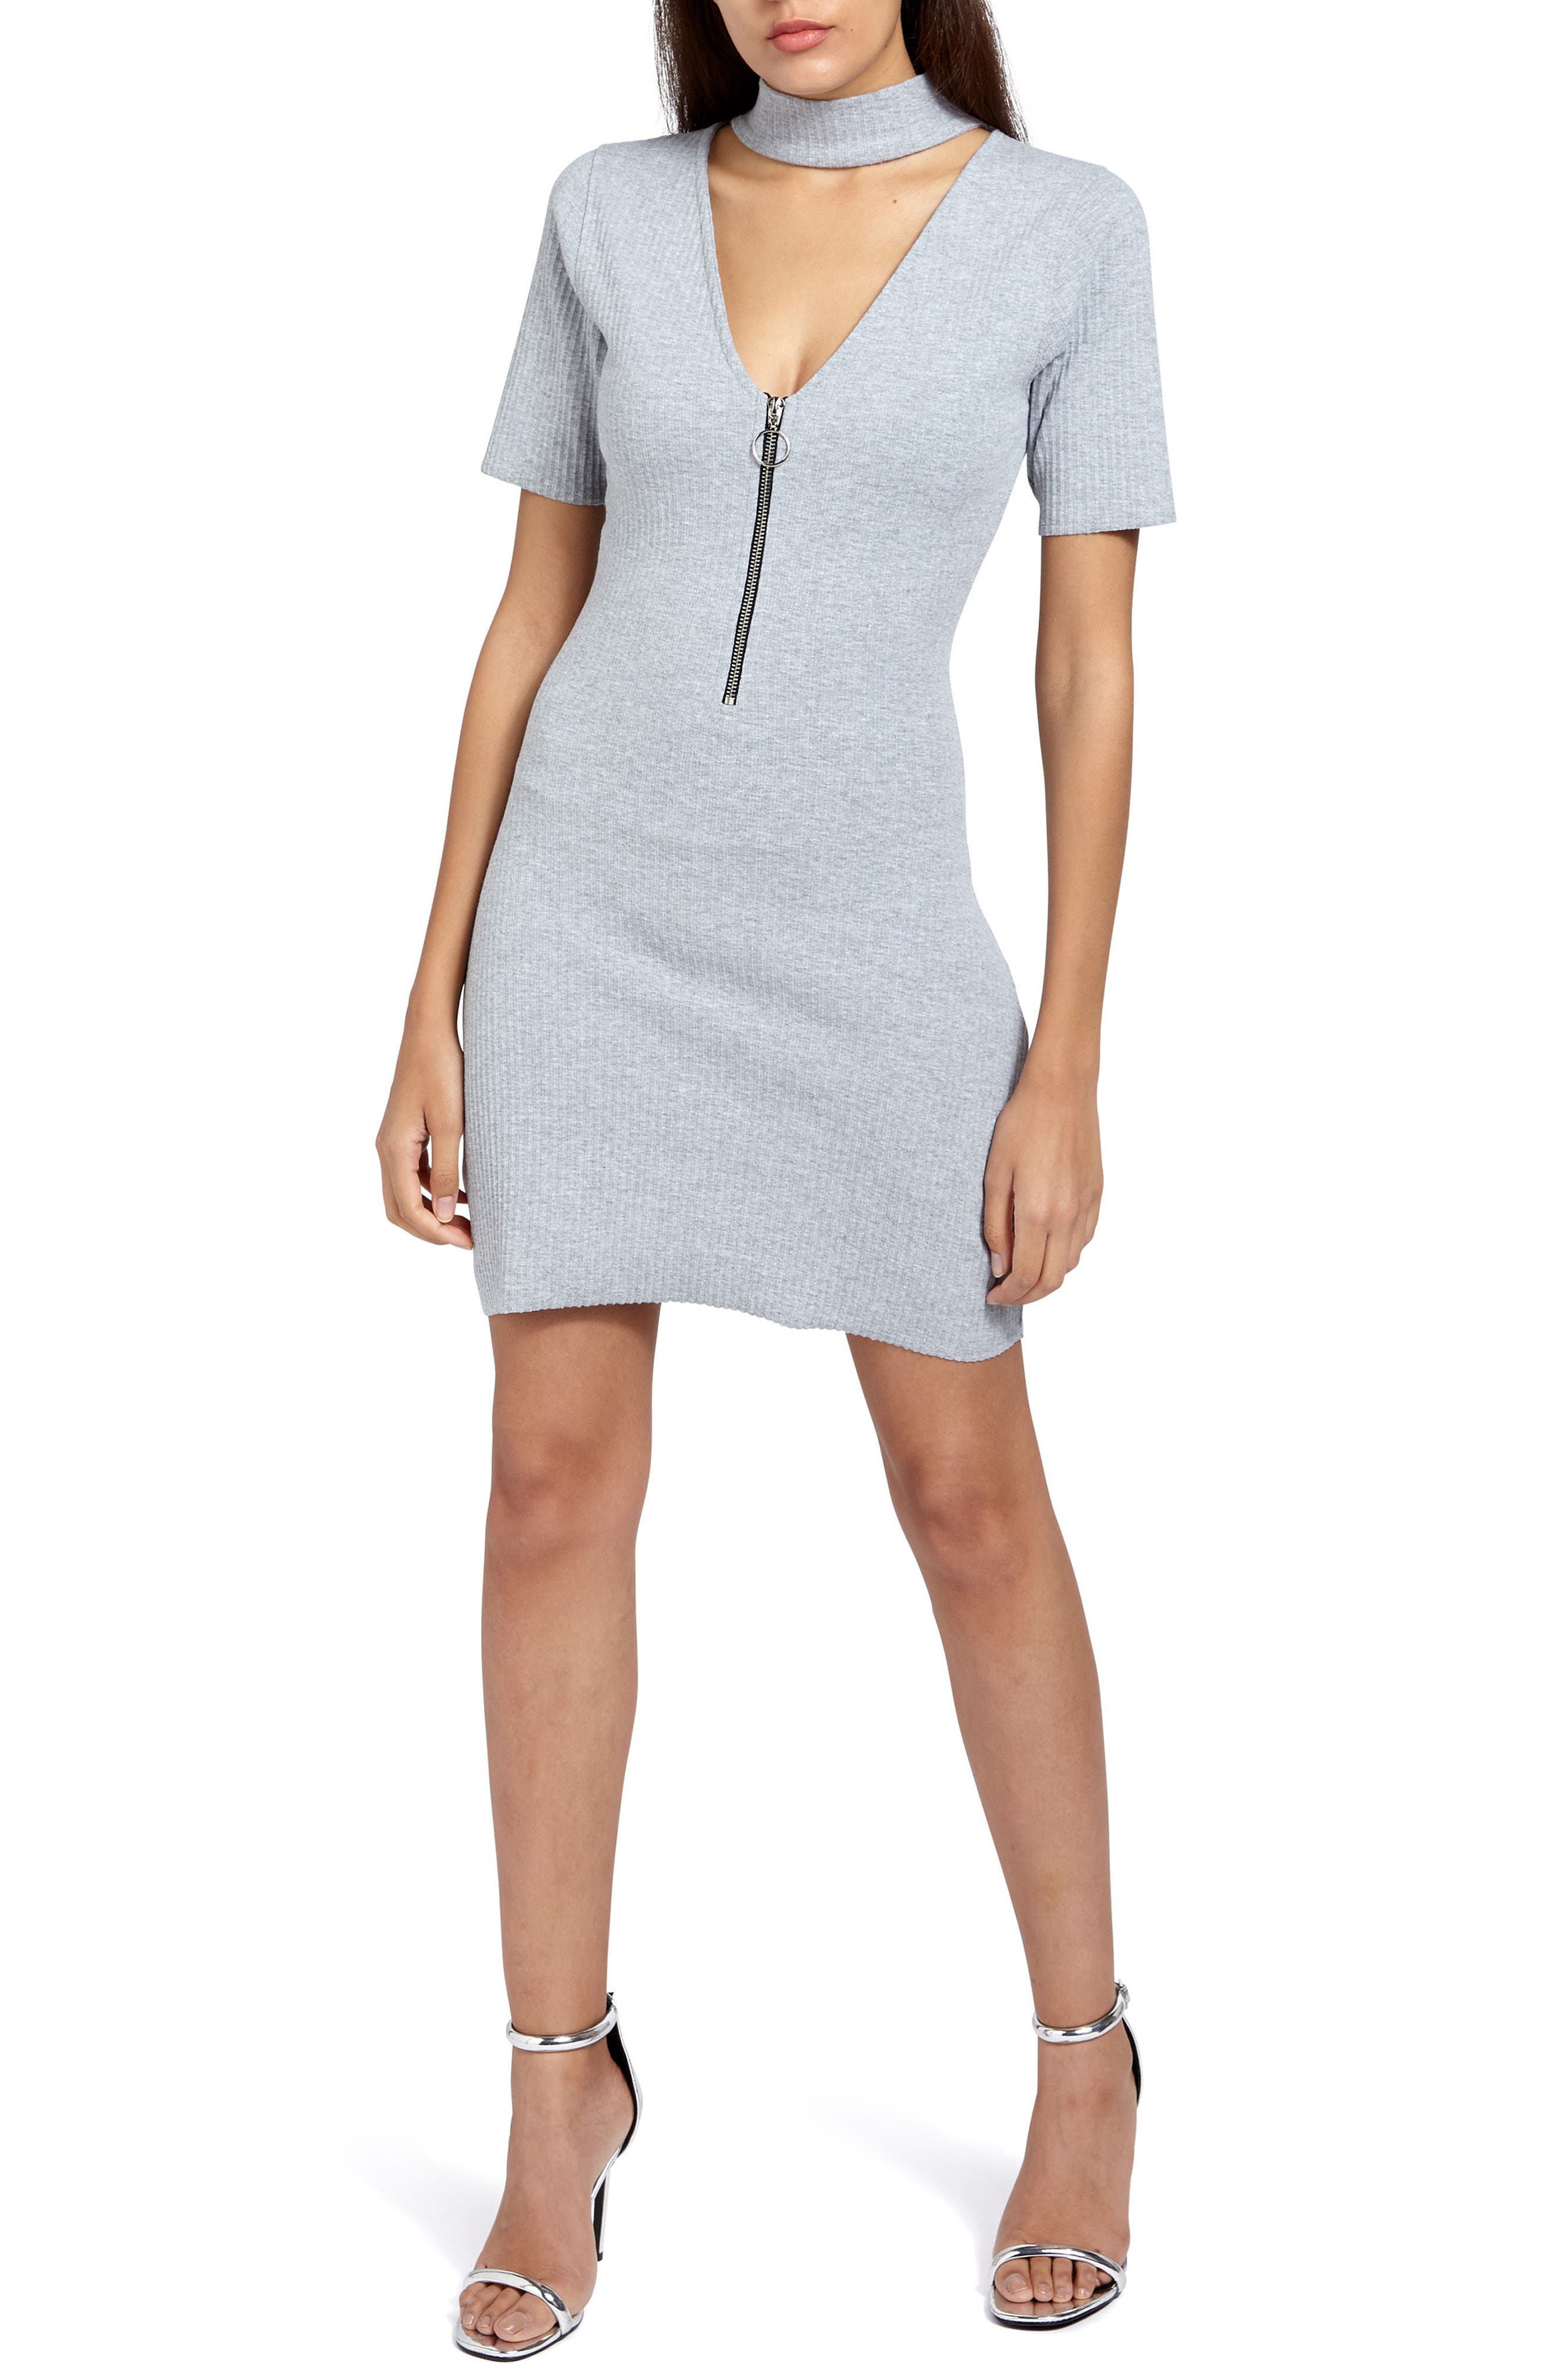 Alternate Image 1 Selected - Missguided Choker Zip Body-Con Dress